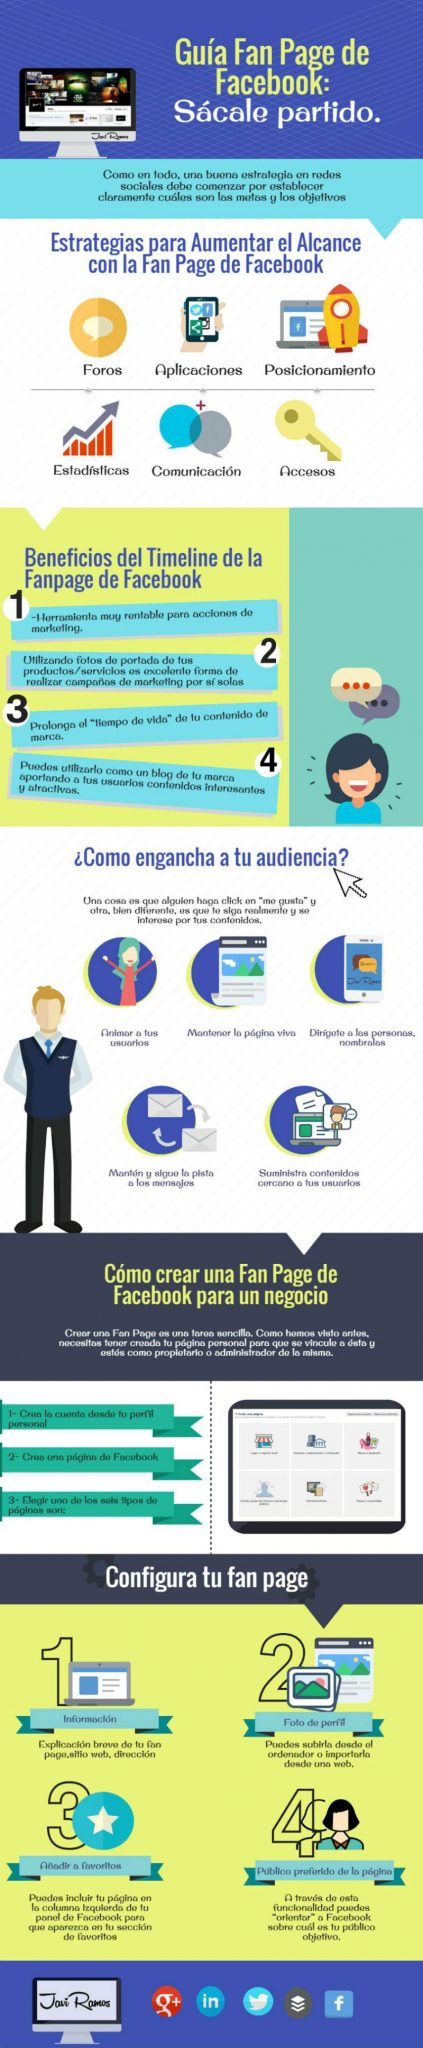 infografia fan page facebook